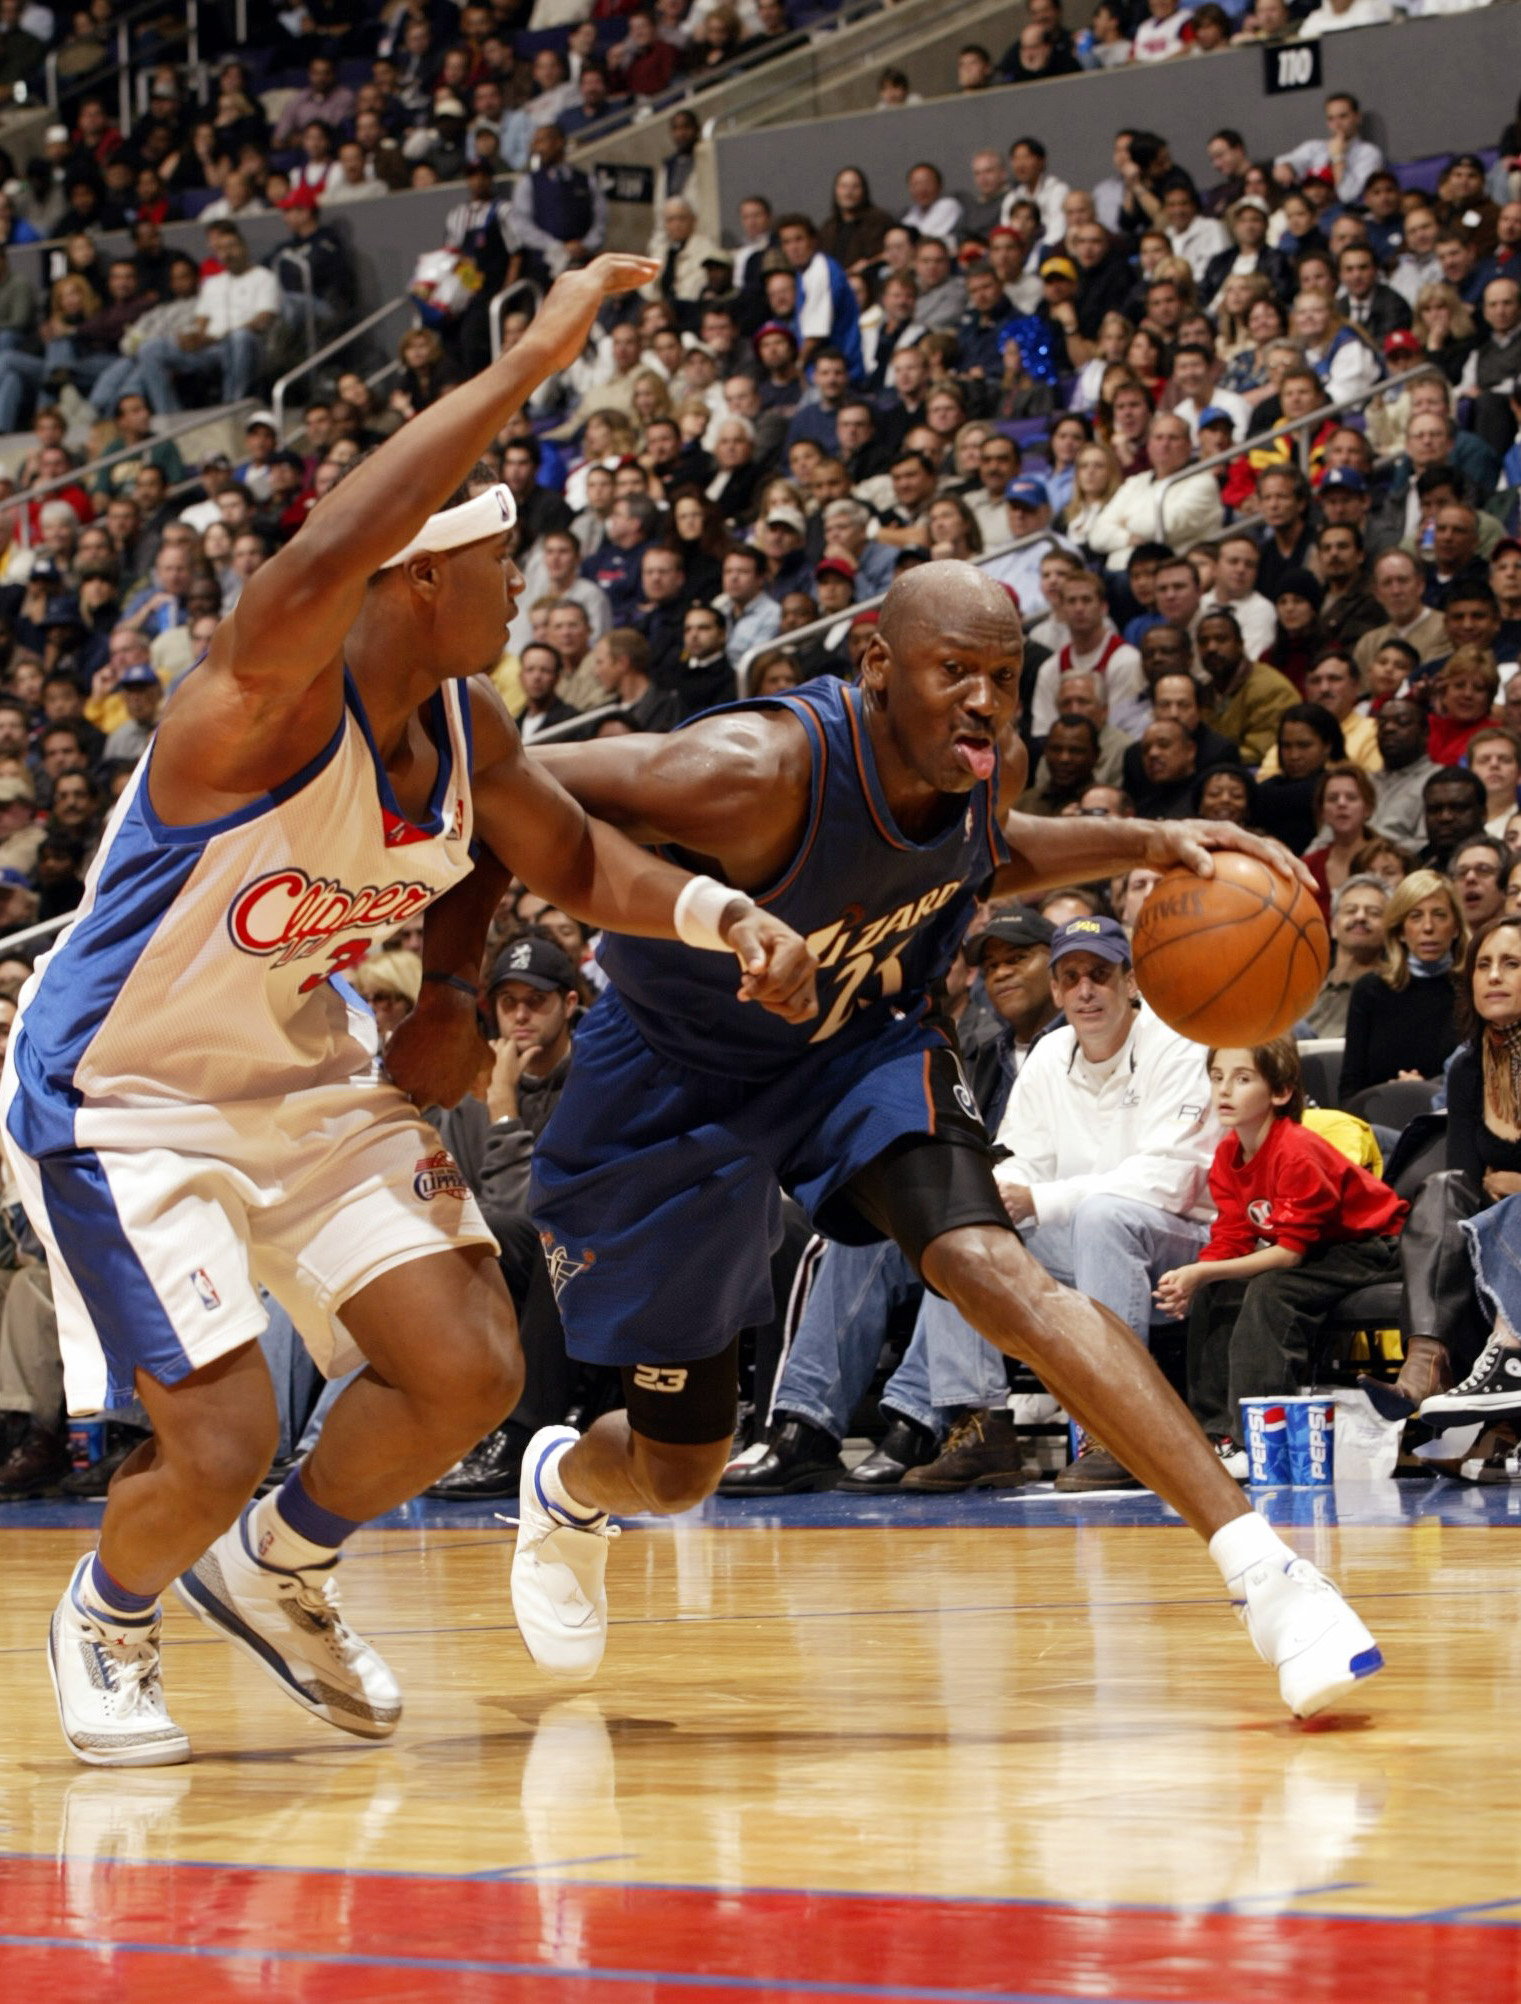 LOS ANGELES - FEBRUARY 12:  Michael Jordan #23 of   the Washington Wizards drives past Quentin Richardson #3 of the Los Angeles Clippers on February 12, 2003 at Staples Center in Los Angeles, California.  The Wizards won 108-104.  (Photo by Stephen Dunn/G